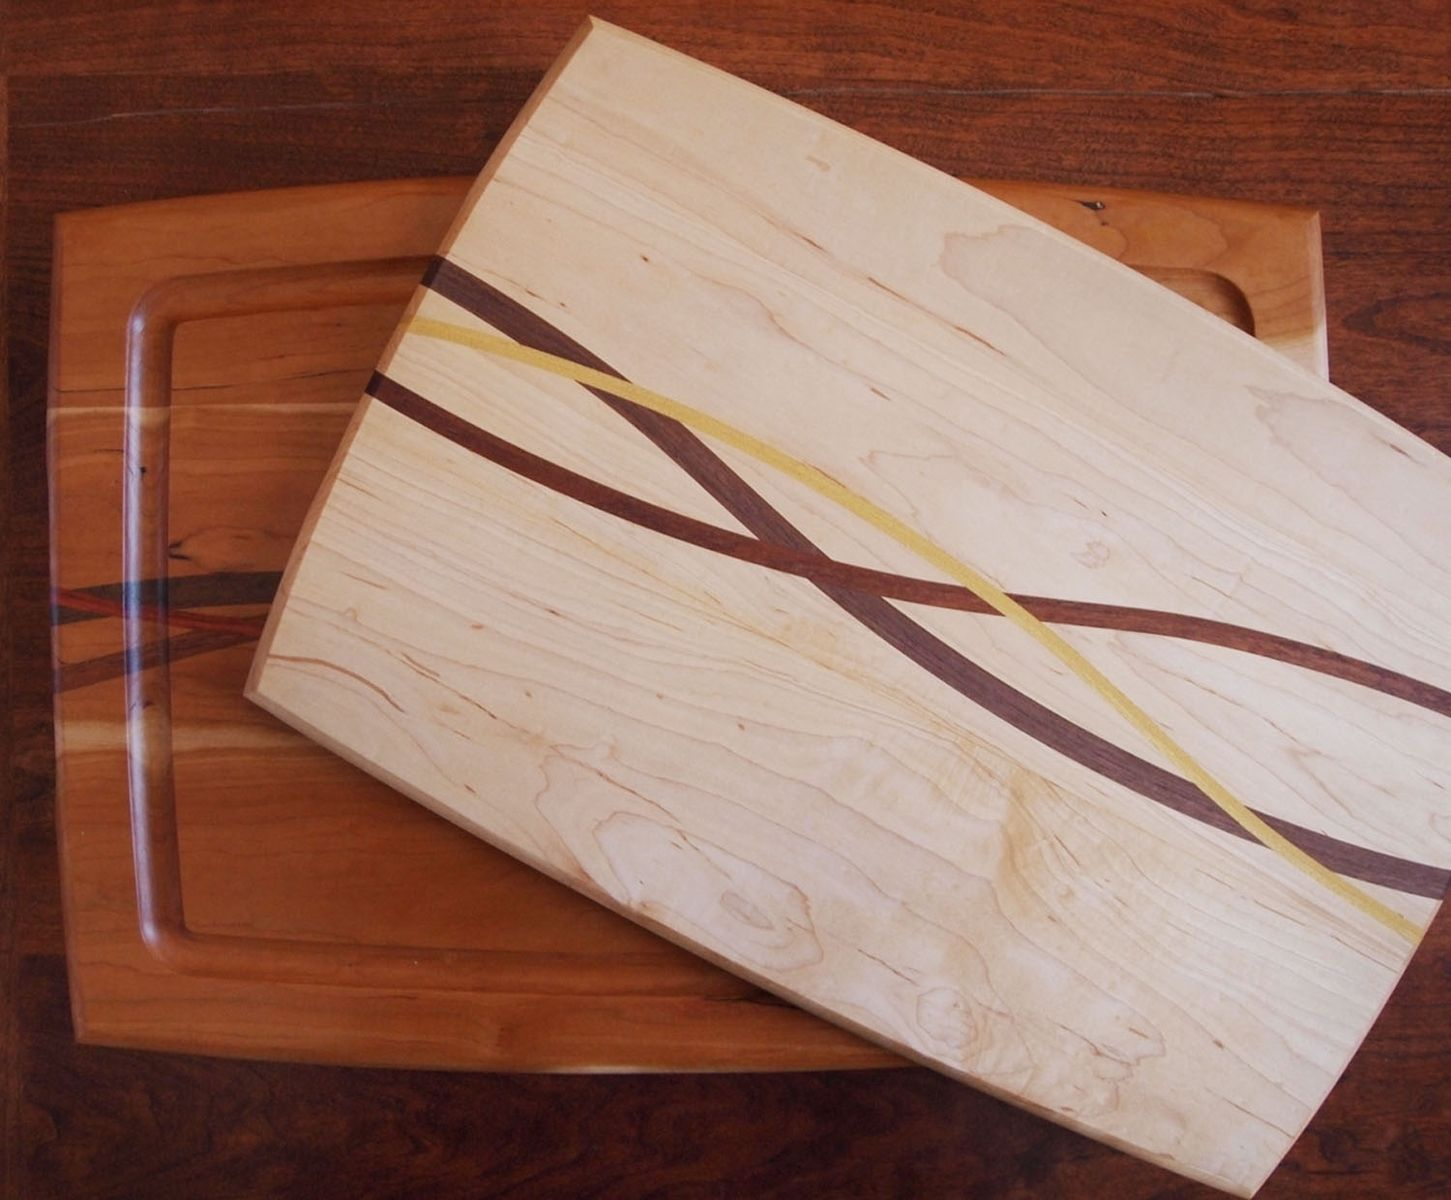 Unusual Cutting Boards Hand Made Inlayed Wood Cutting Boards By Curt Lambert